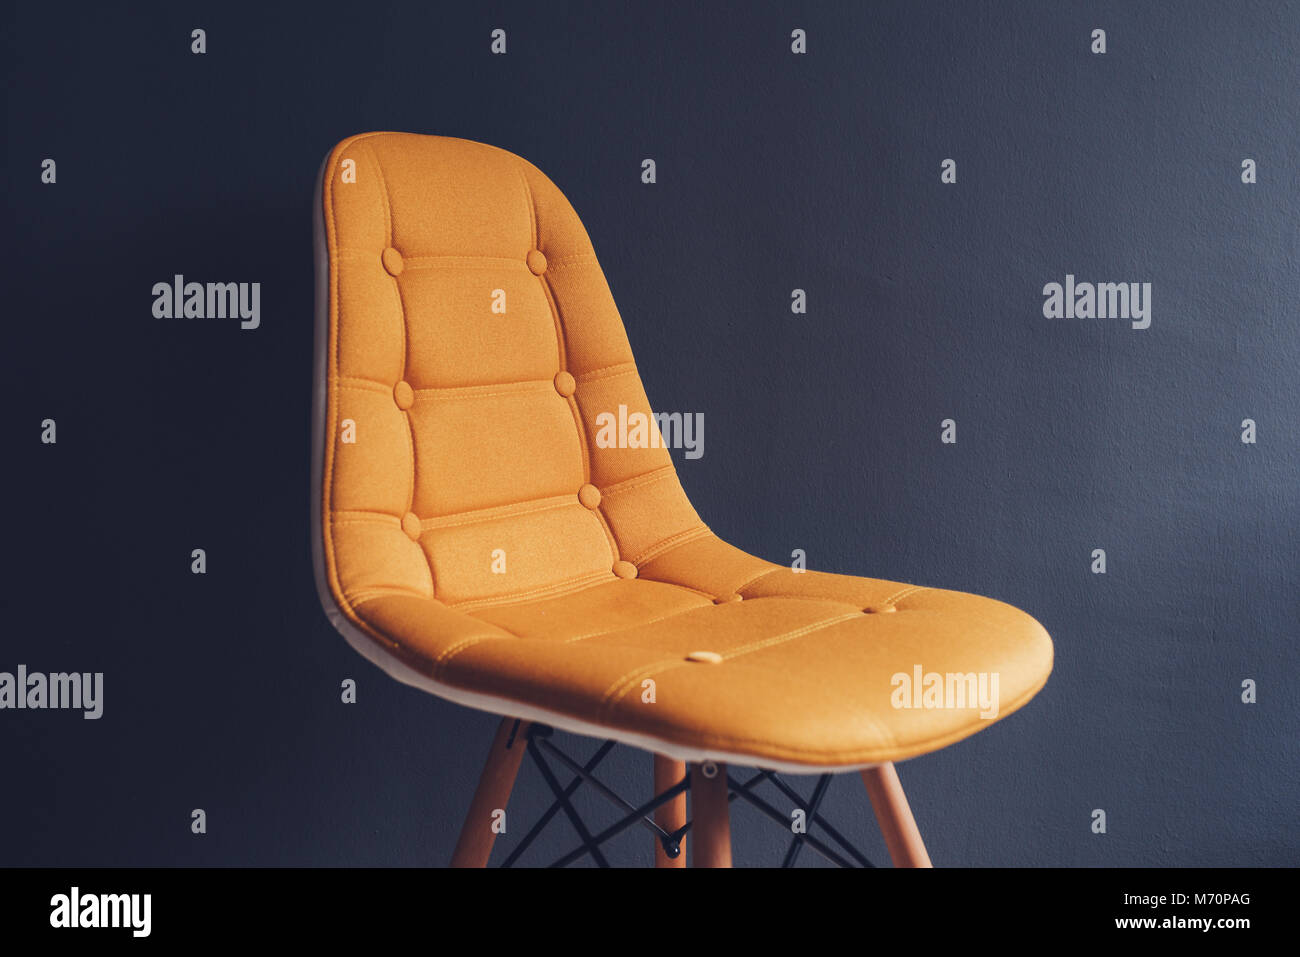 Empty generic yellow chair against gray wall of waiting room interior, minimalist composition with copy space - Stock Image